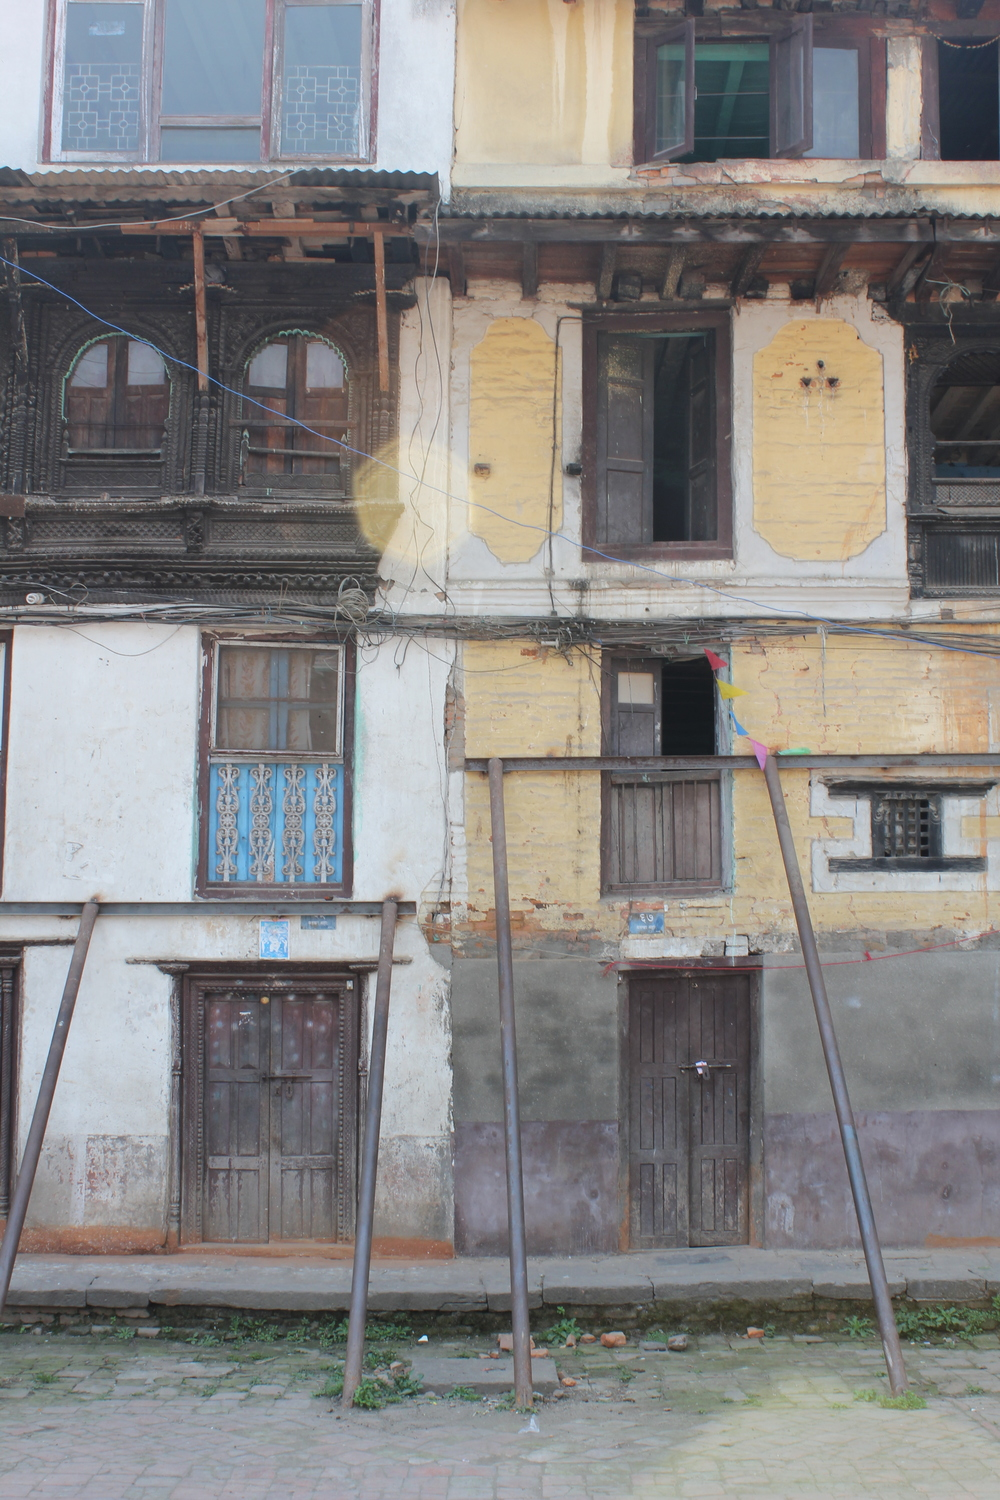 Steel beams used to support this housing structure in Kathmandu because of structural damage caused by the April 2015 earthquake.  A common sight in and around Kathmandu.